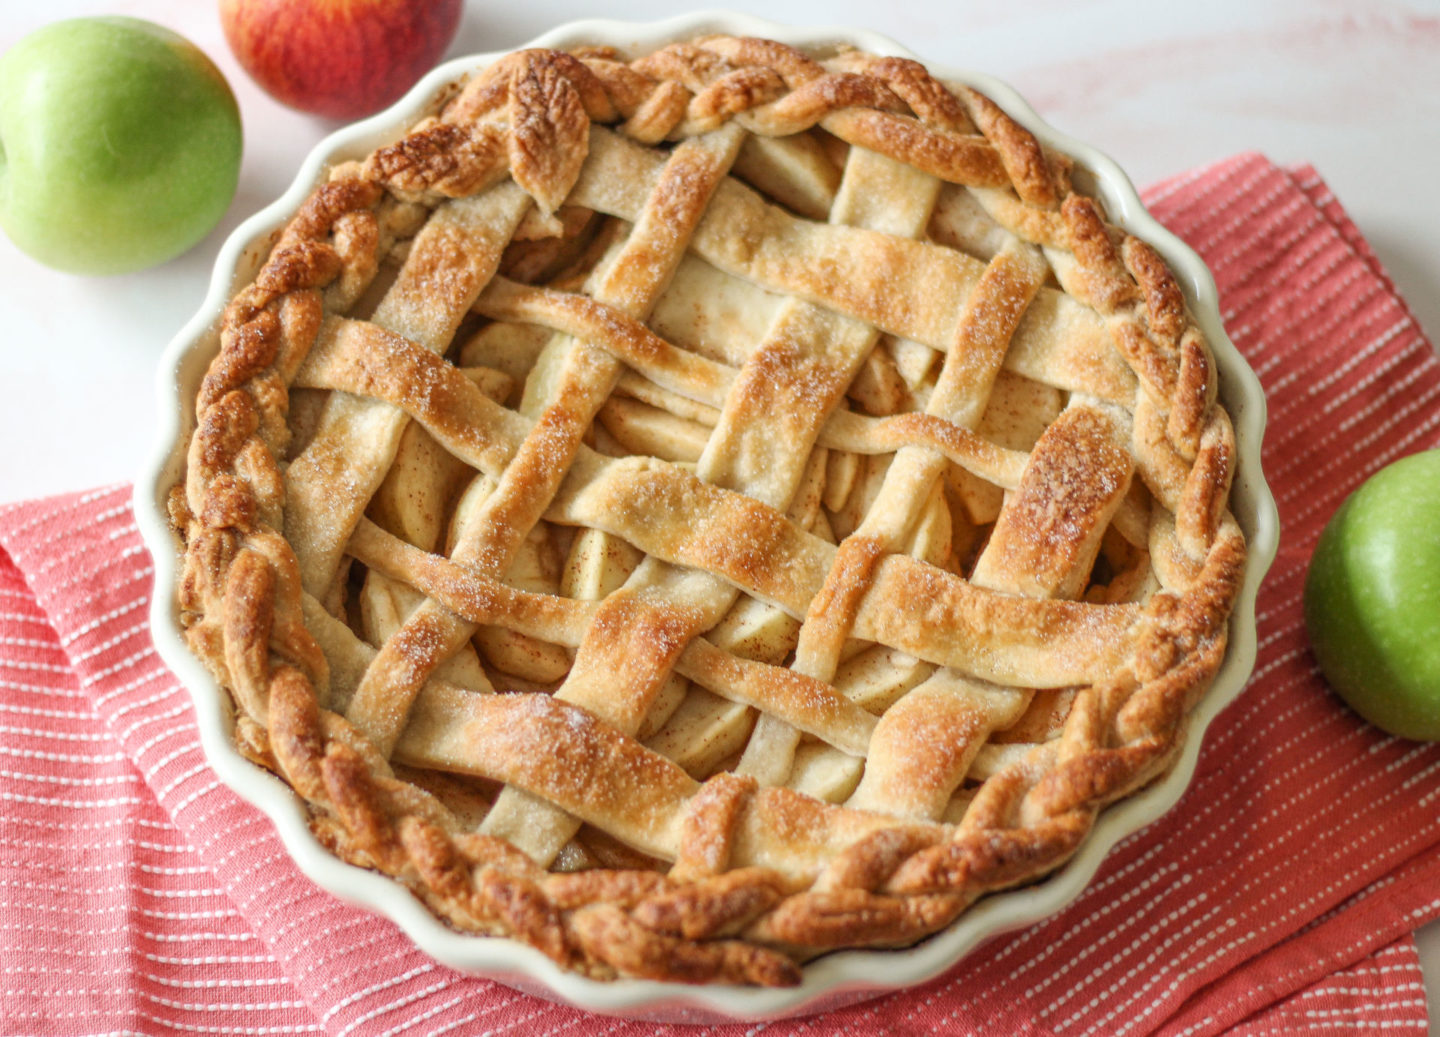 view from above of whole uncut lattice apple pie